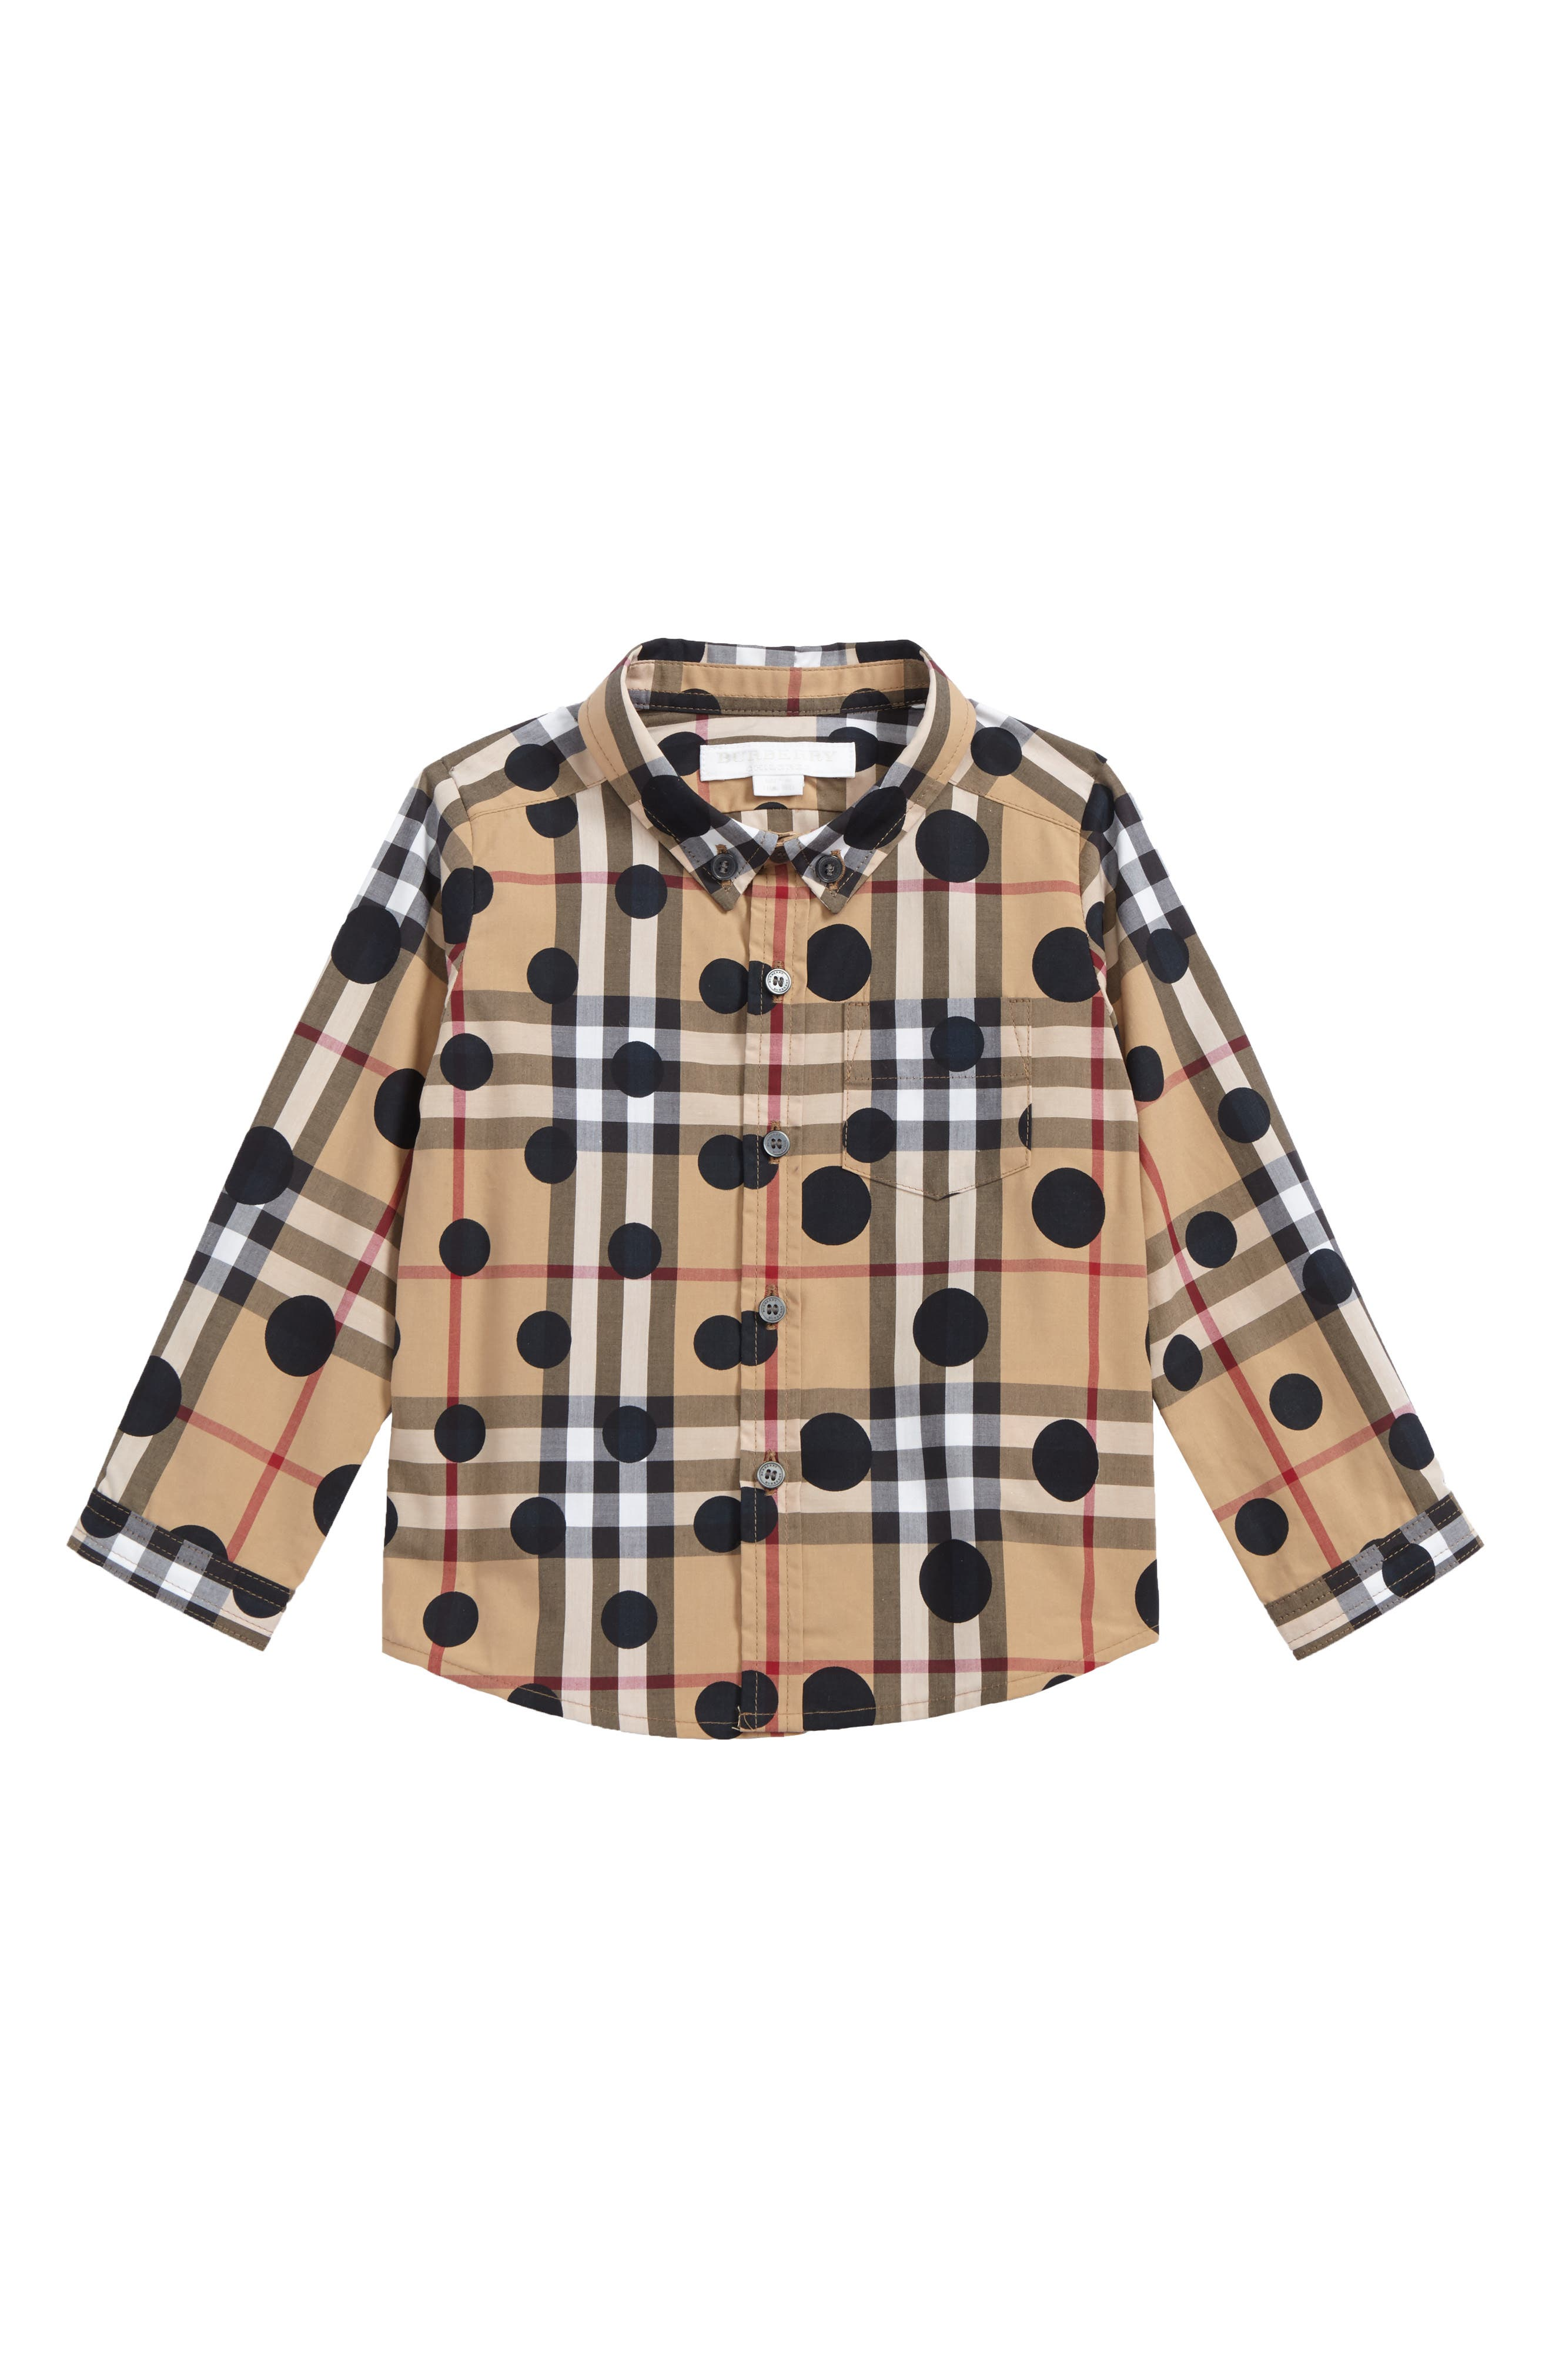 Mini Fred Polka Dot & Check Print Shirt,                             Main thumbnail 1, color,                             272